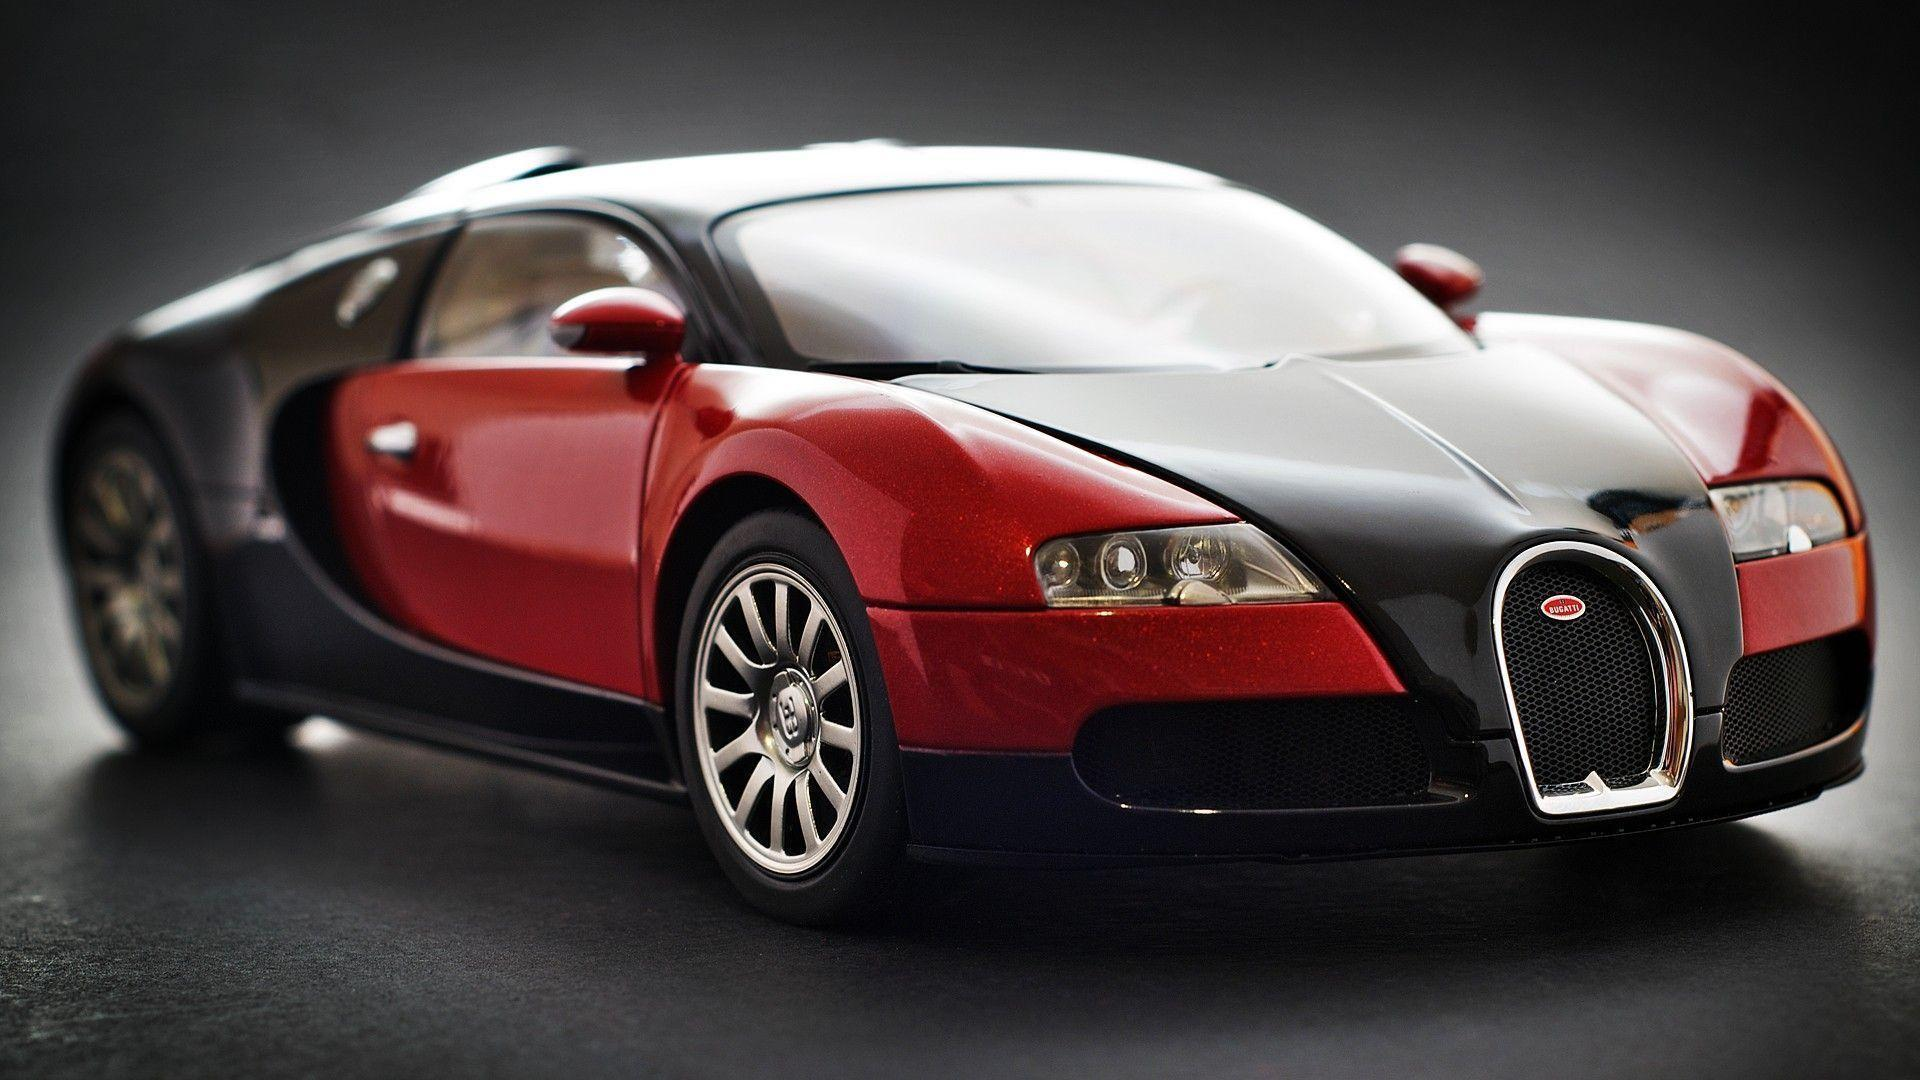 Black Bugatti Veyron Wallpapers 1920x1080